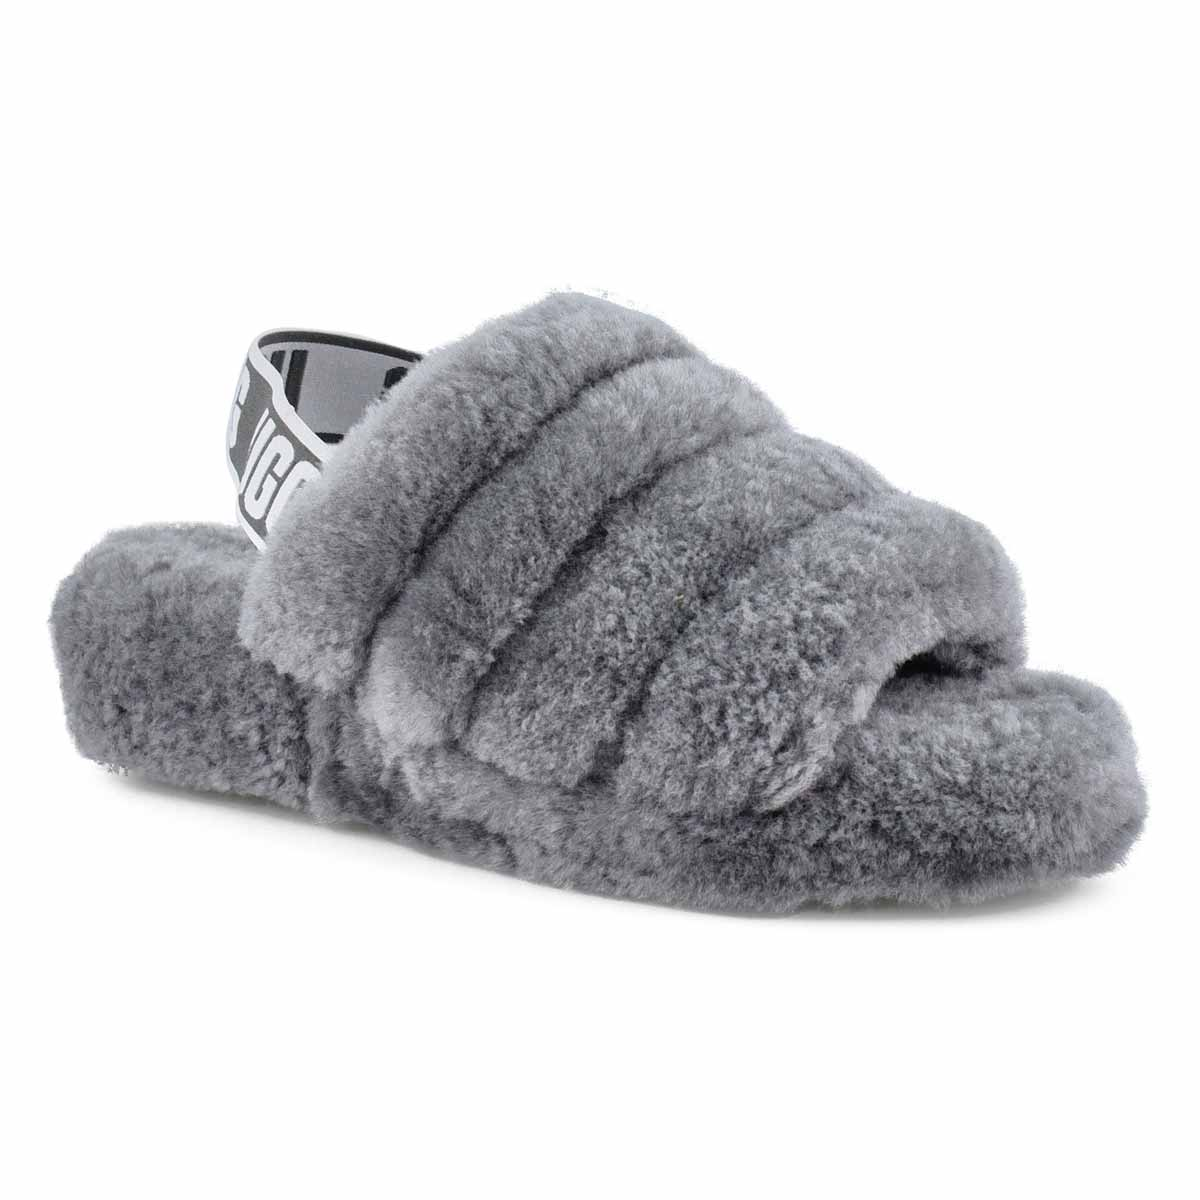 53ca46e4e4c Women's FLUFF YEAH charcoal sheepskin slippers